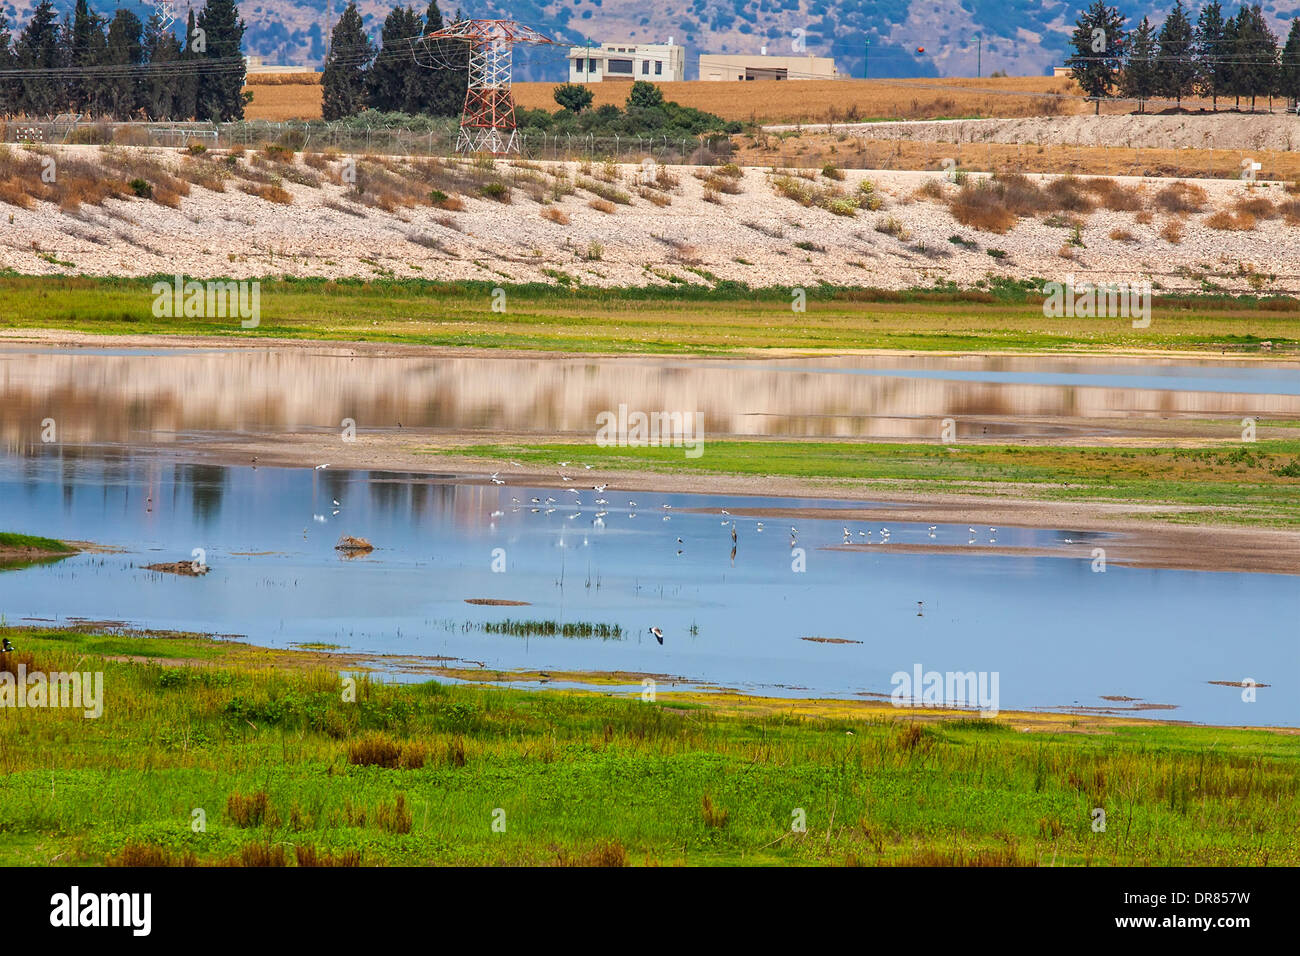 ponds water surface in springtime with birds - Stock Image